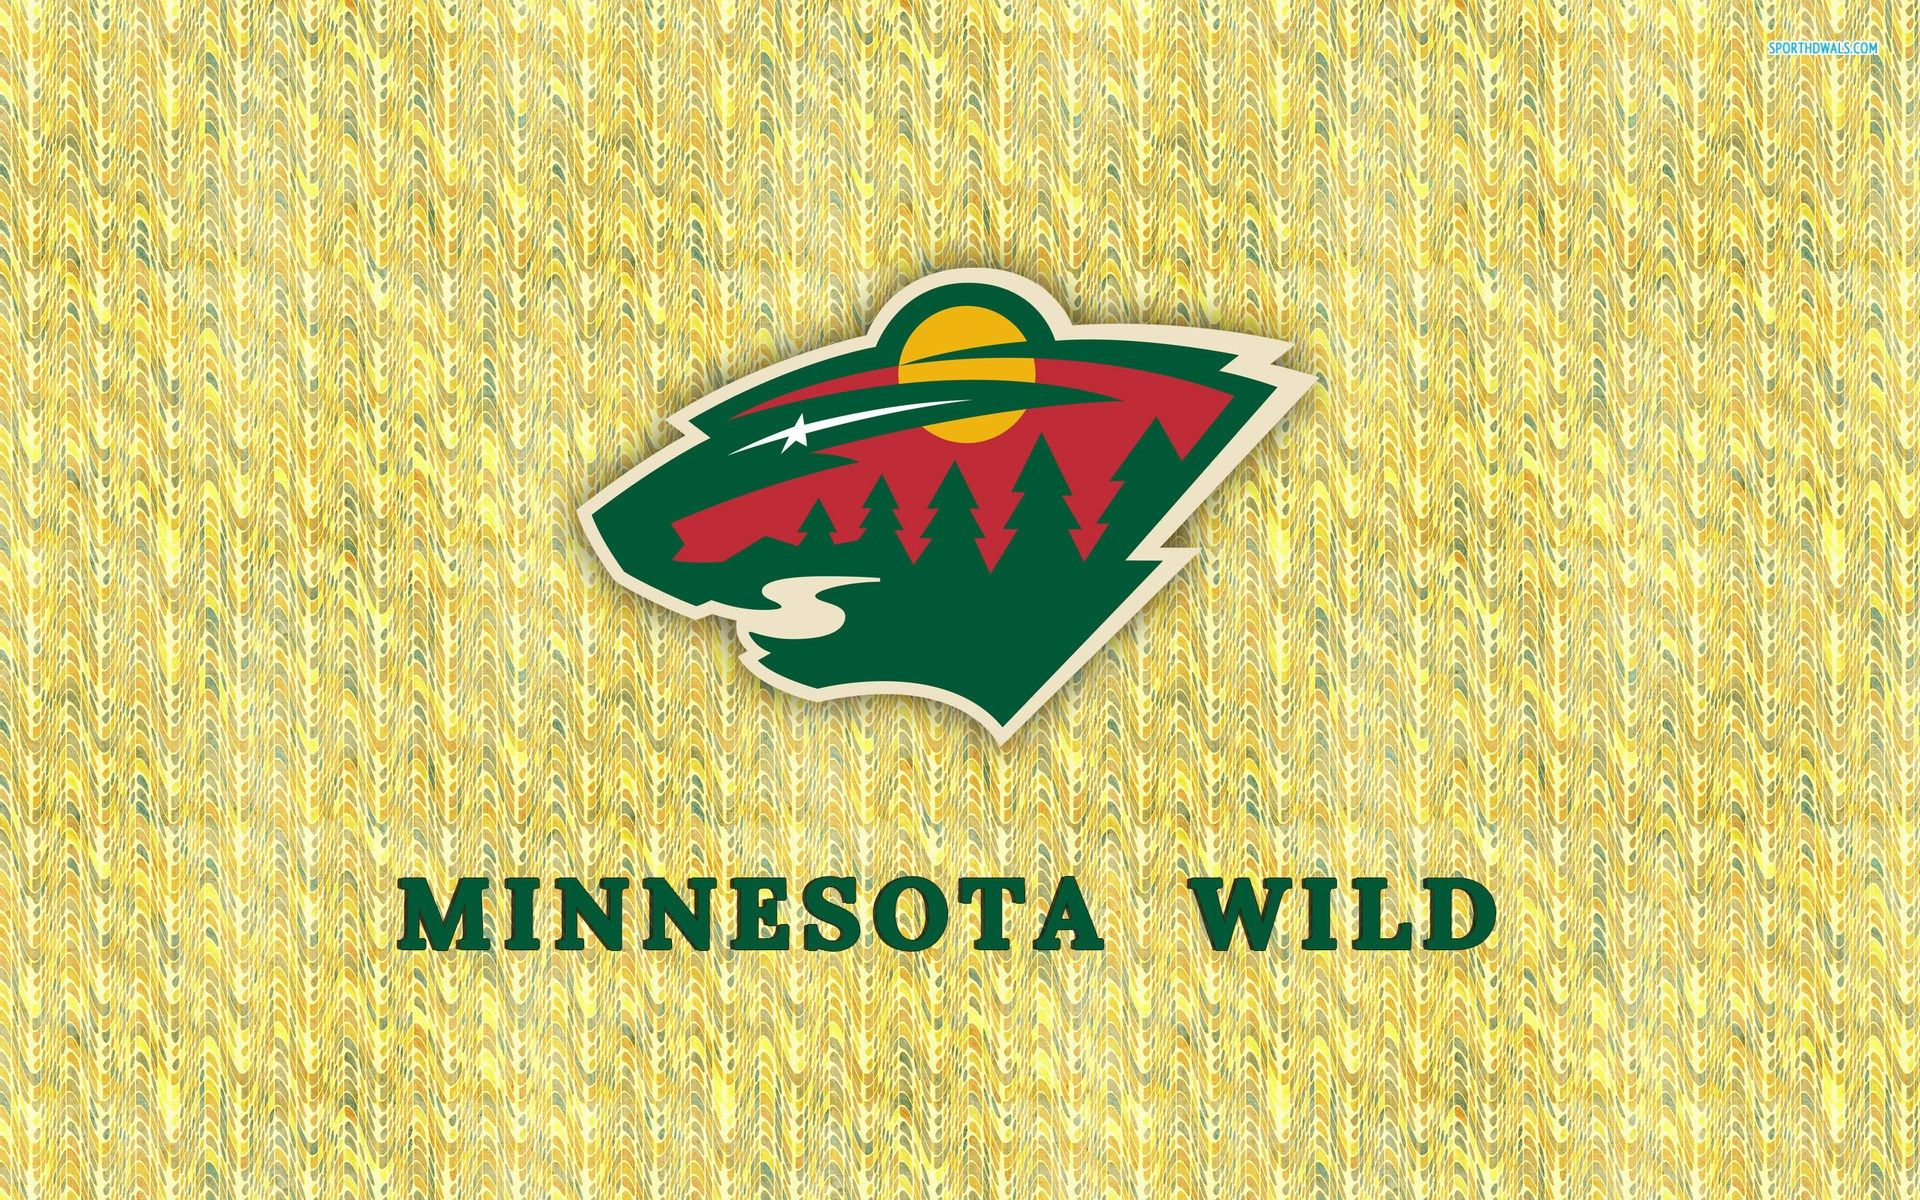 Minnesota Wild Wallpapers